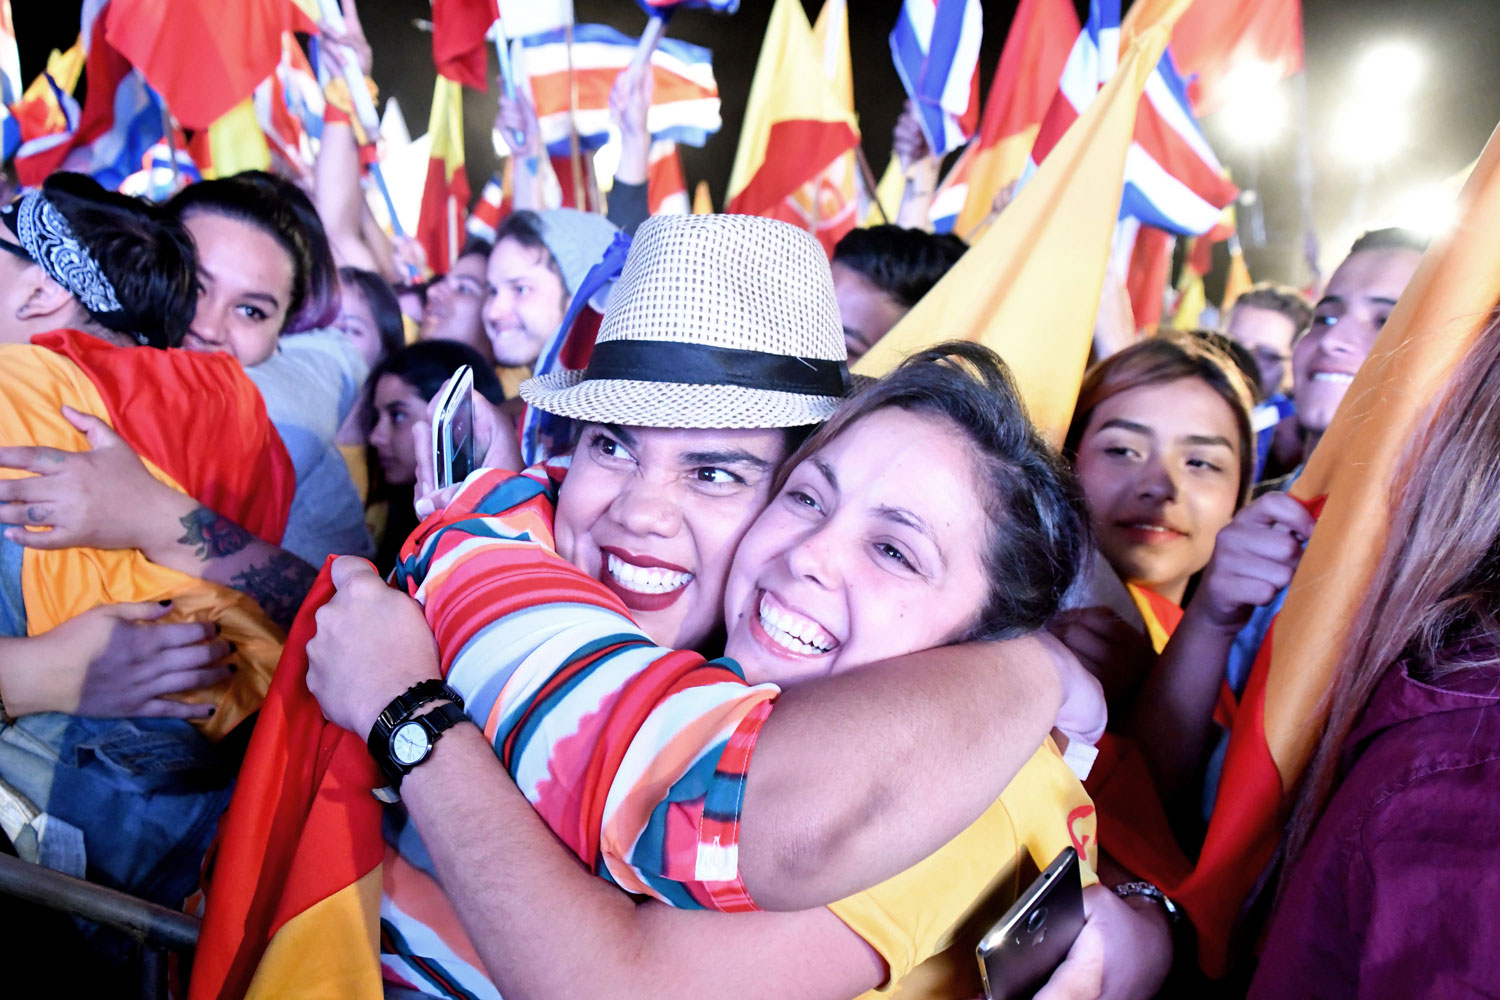 Supporters of presidential candidate Carlos Alvarado of Costa Rica's center-left ruling party celebrate his election in San Jose on April 1. Alvarado, a 38-year-old former labor minister, decisively won the runoff against an evangelical preacher who rose to prominence by campaigning against same-sex marriage. (Ezequiel Becerra/AFP/Getty Images)